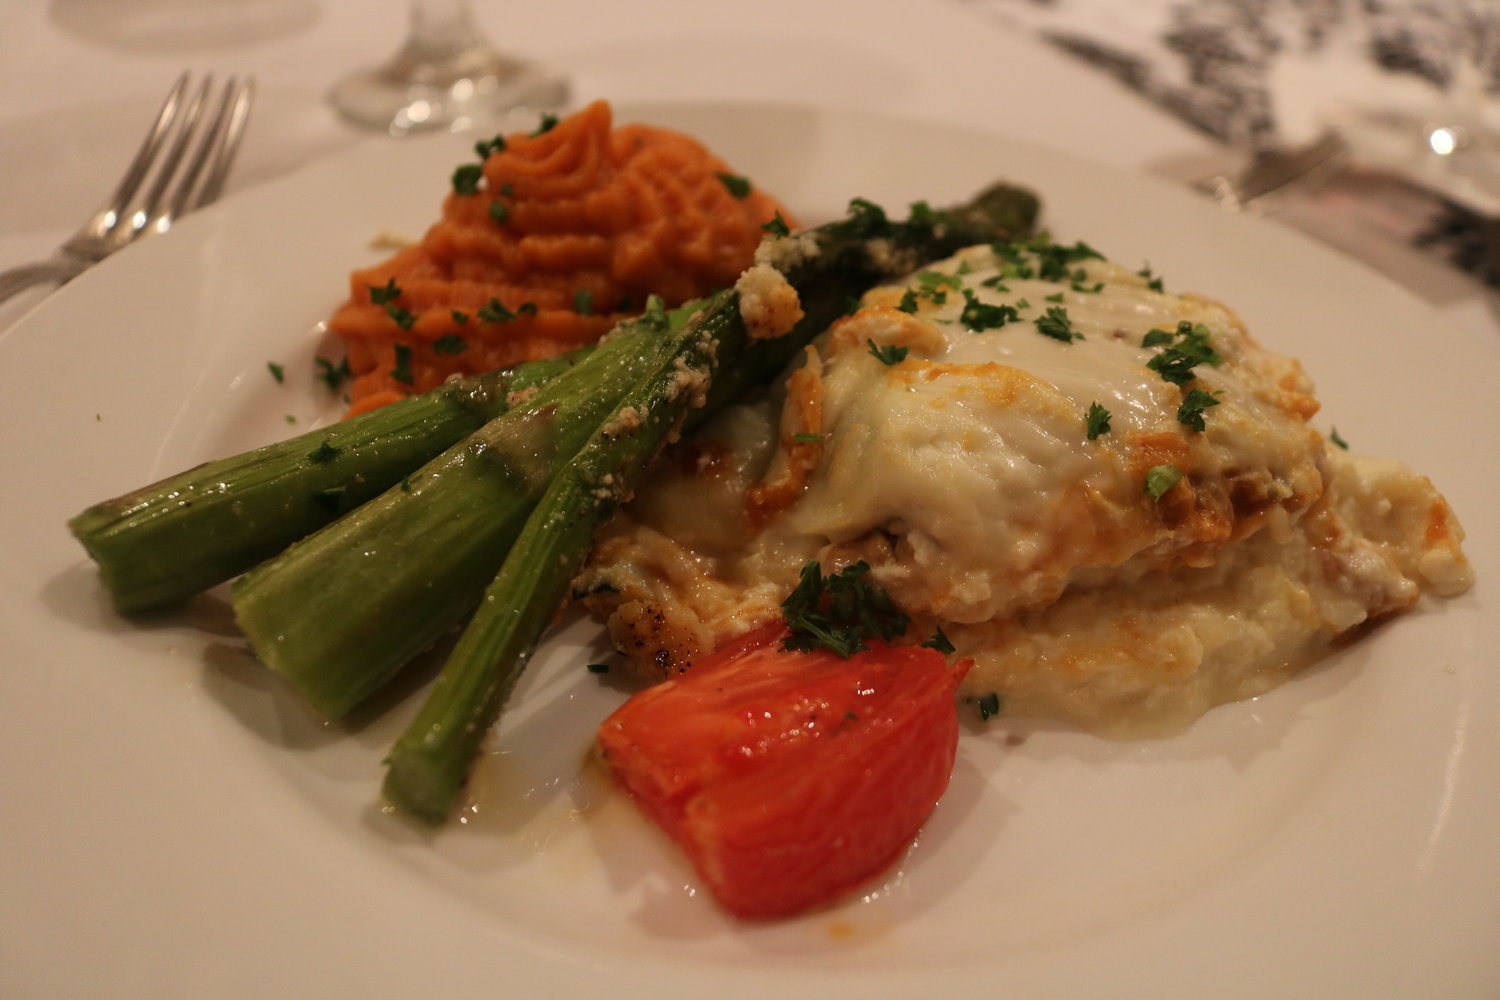 8.	A Fall-inspired pumpkin lasagna was served to guests, with a side of carrot, sweet-potato mash and roasted tomato halves.